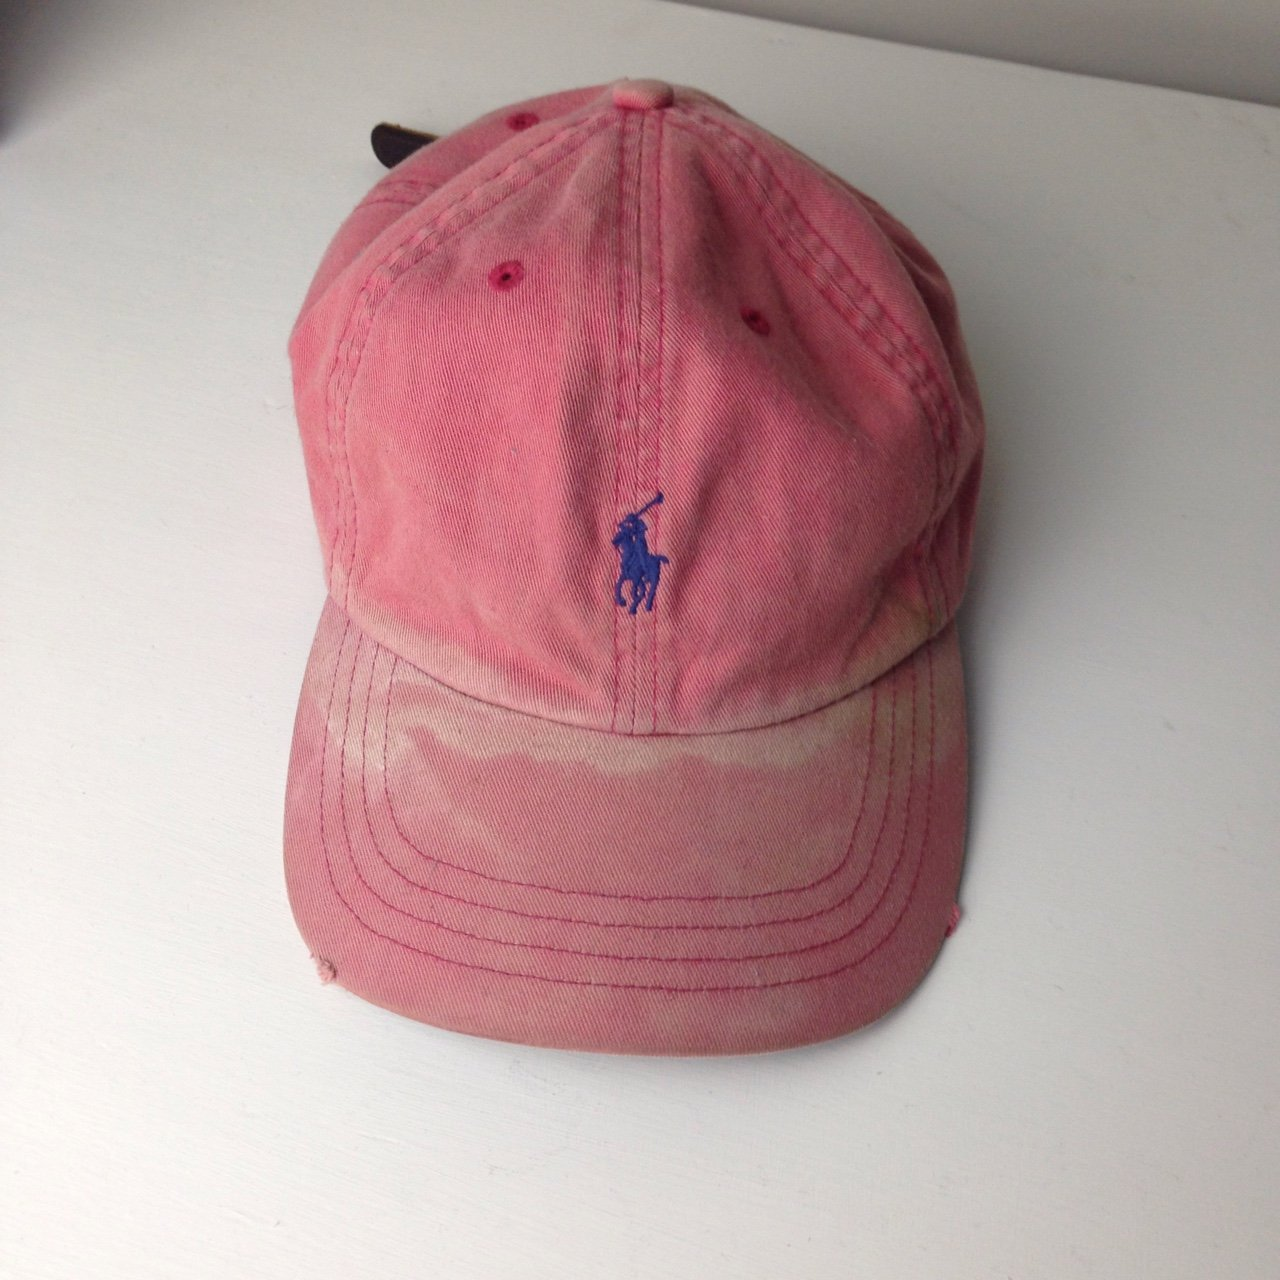 a6fe39db747 Polo Ralph Lauren authentic vintage cap. Washed out red with - Depop